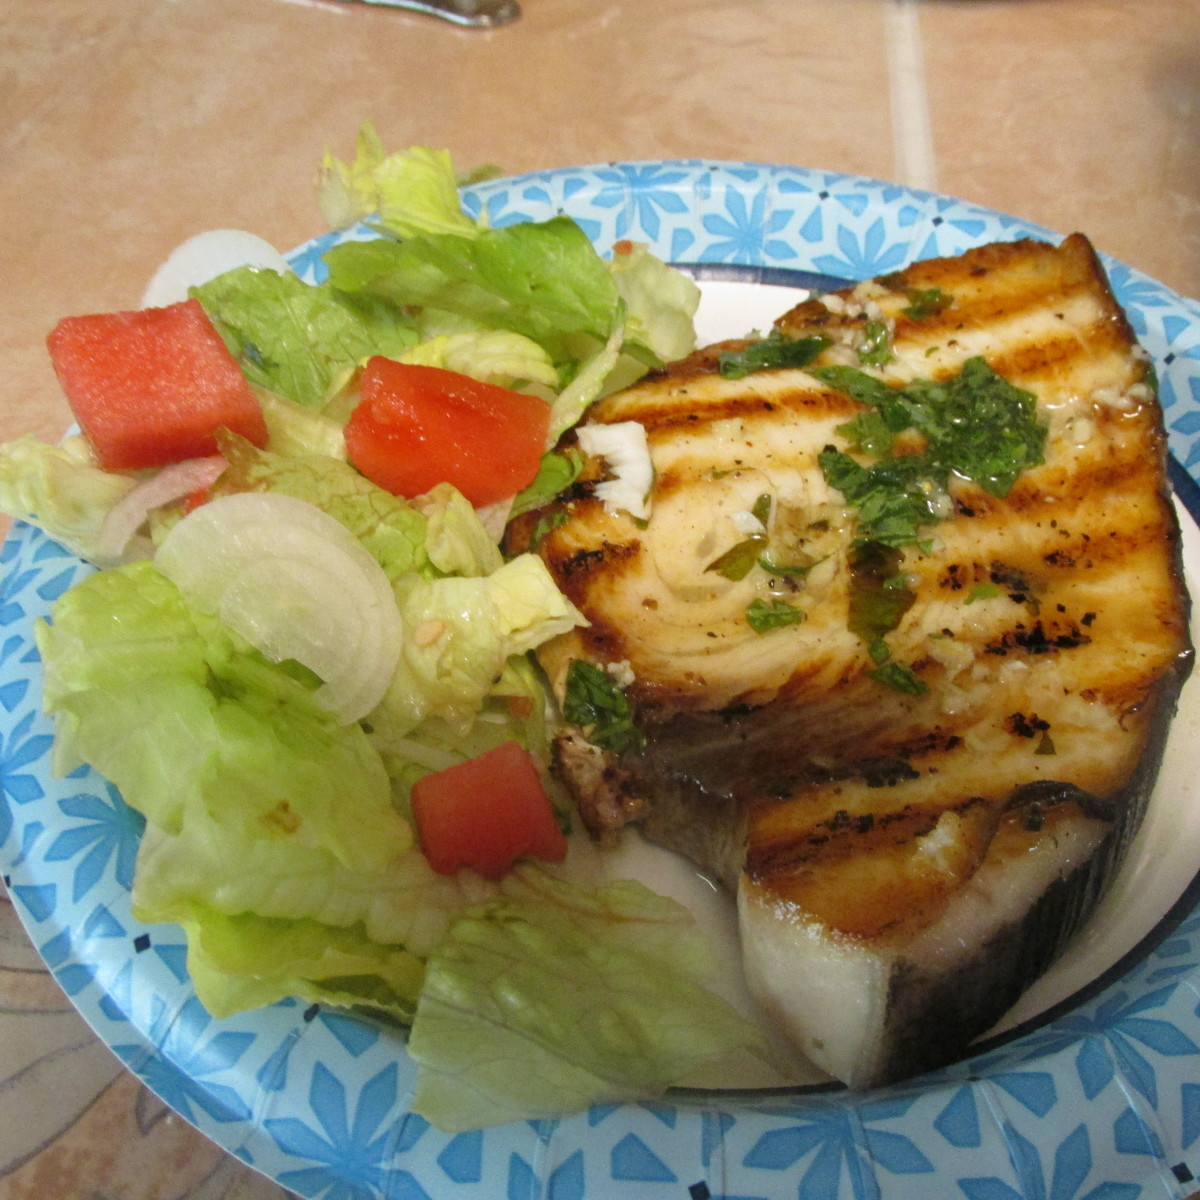 Grilled swordfish with a side salad